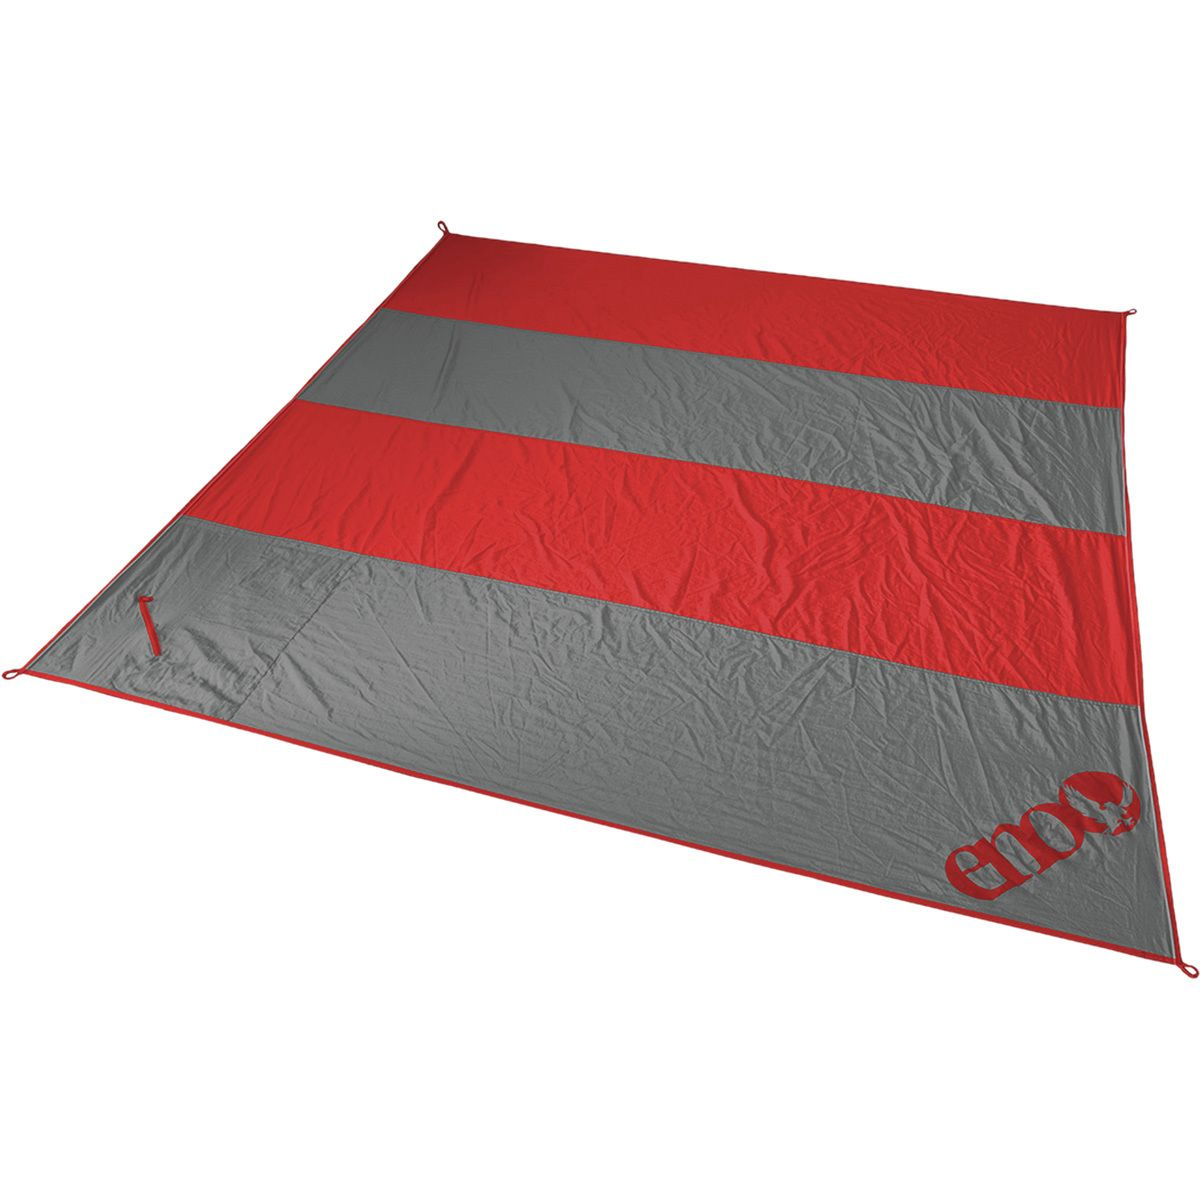 Eagles Nest Outfitters Islander Deluxe Blanket